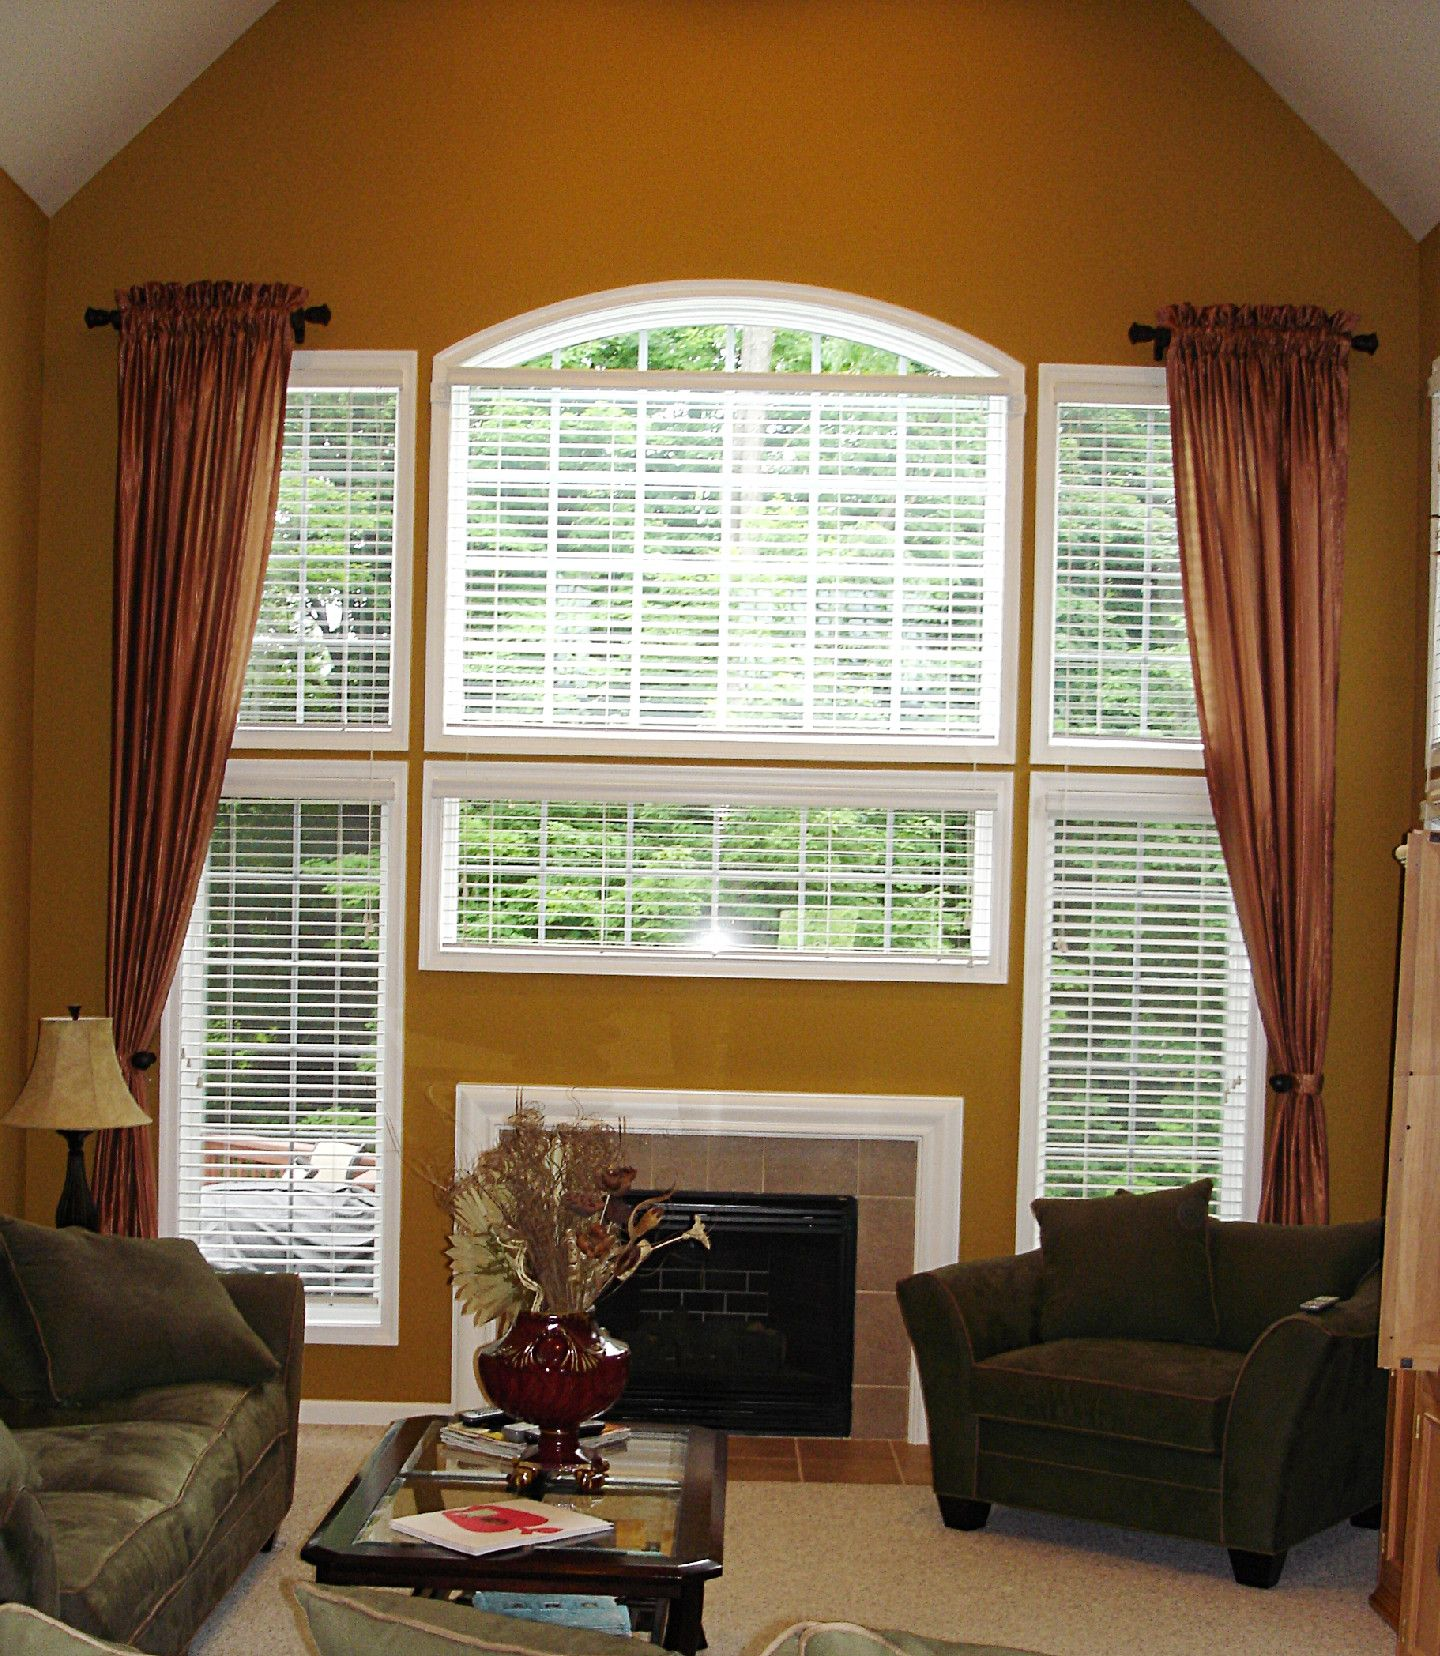 What Is Your Window Style Window Styles Wood Burning Fireplace Inserts Custom Curtains